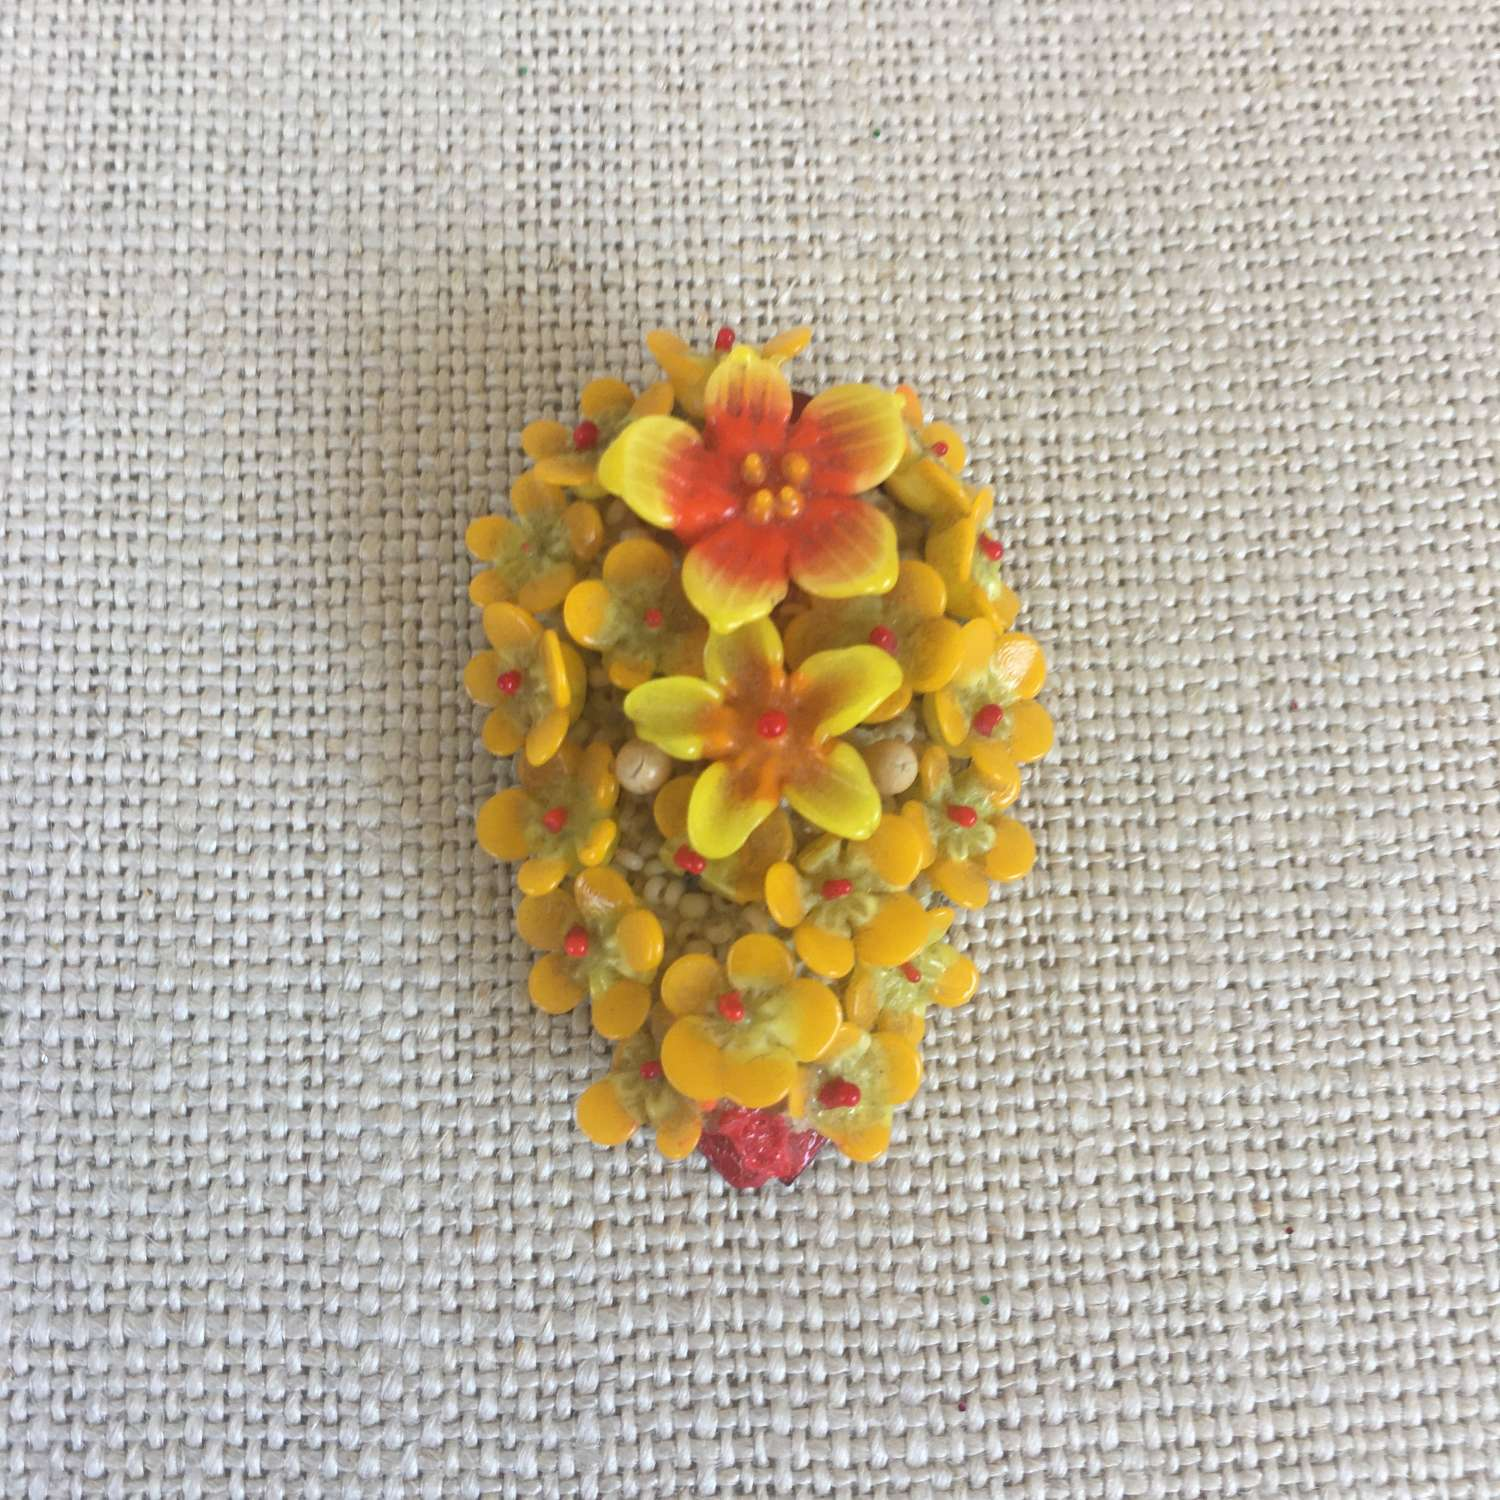 Vintage plastic yellow red floral dress clip